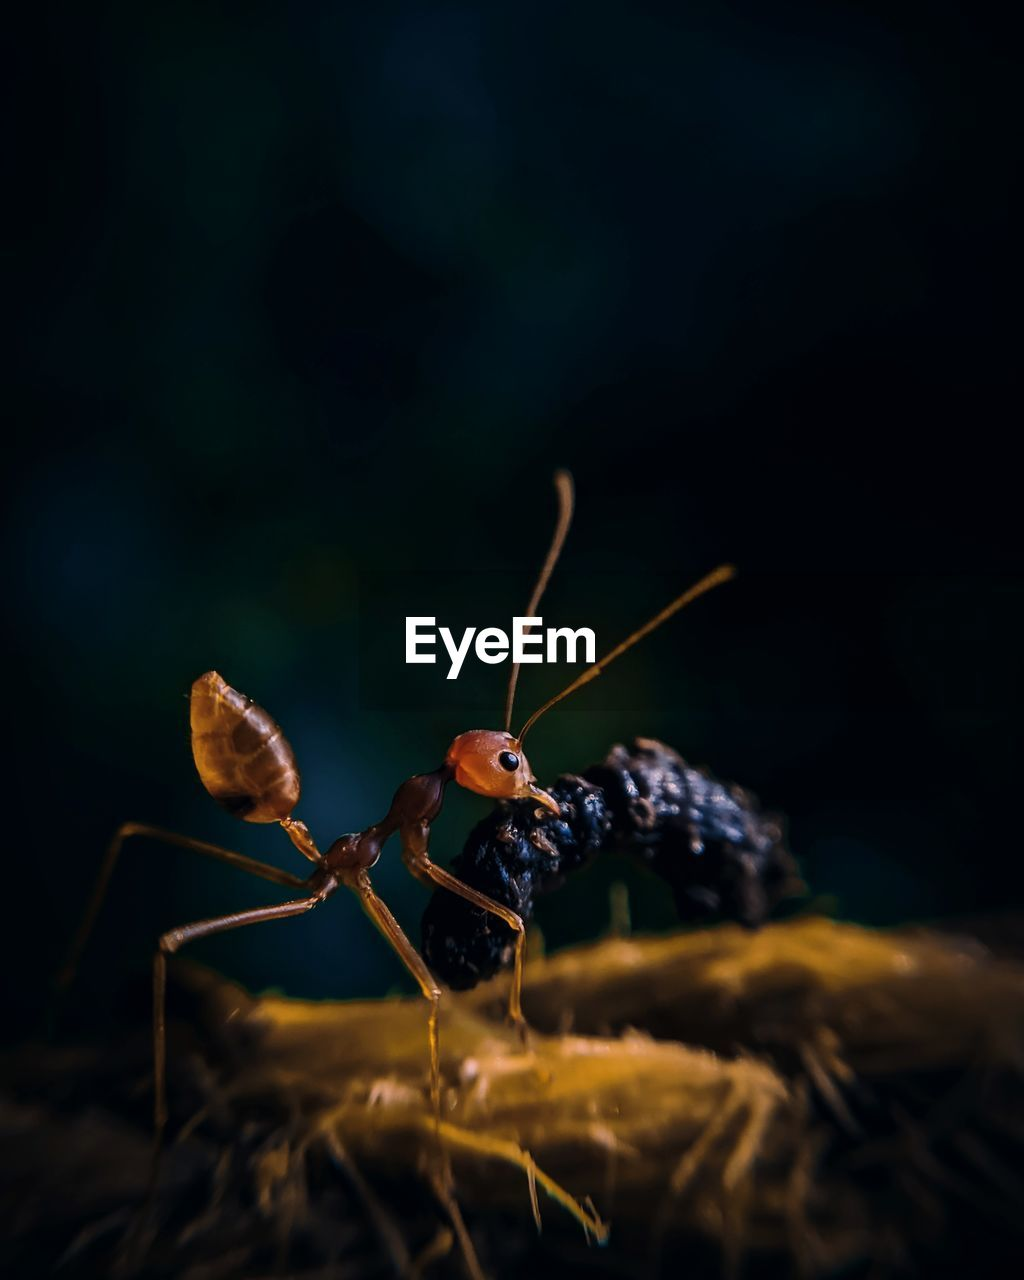 invertebrate, insect, close-up, animal themes, selective focus, animal wildlife, animal, animals in the wild, nature, one animal, plant, no people, day, focus on foreground, outdoors, ant, animal body part, zoology, brown